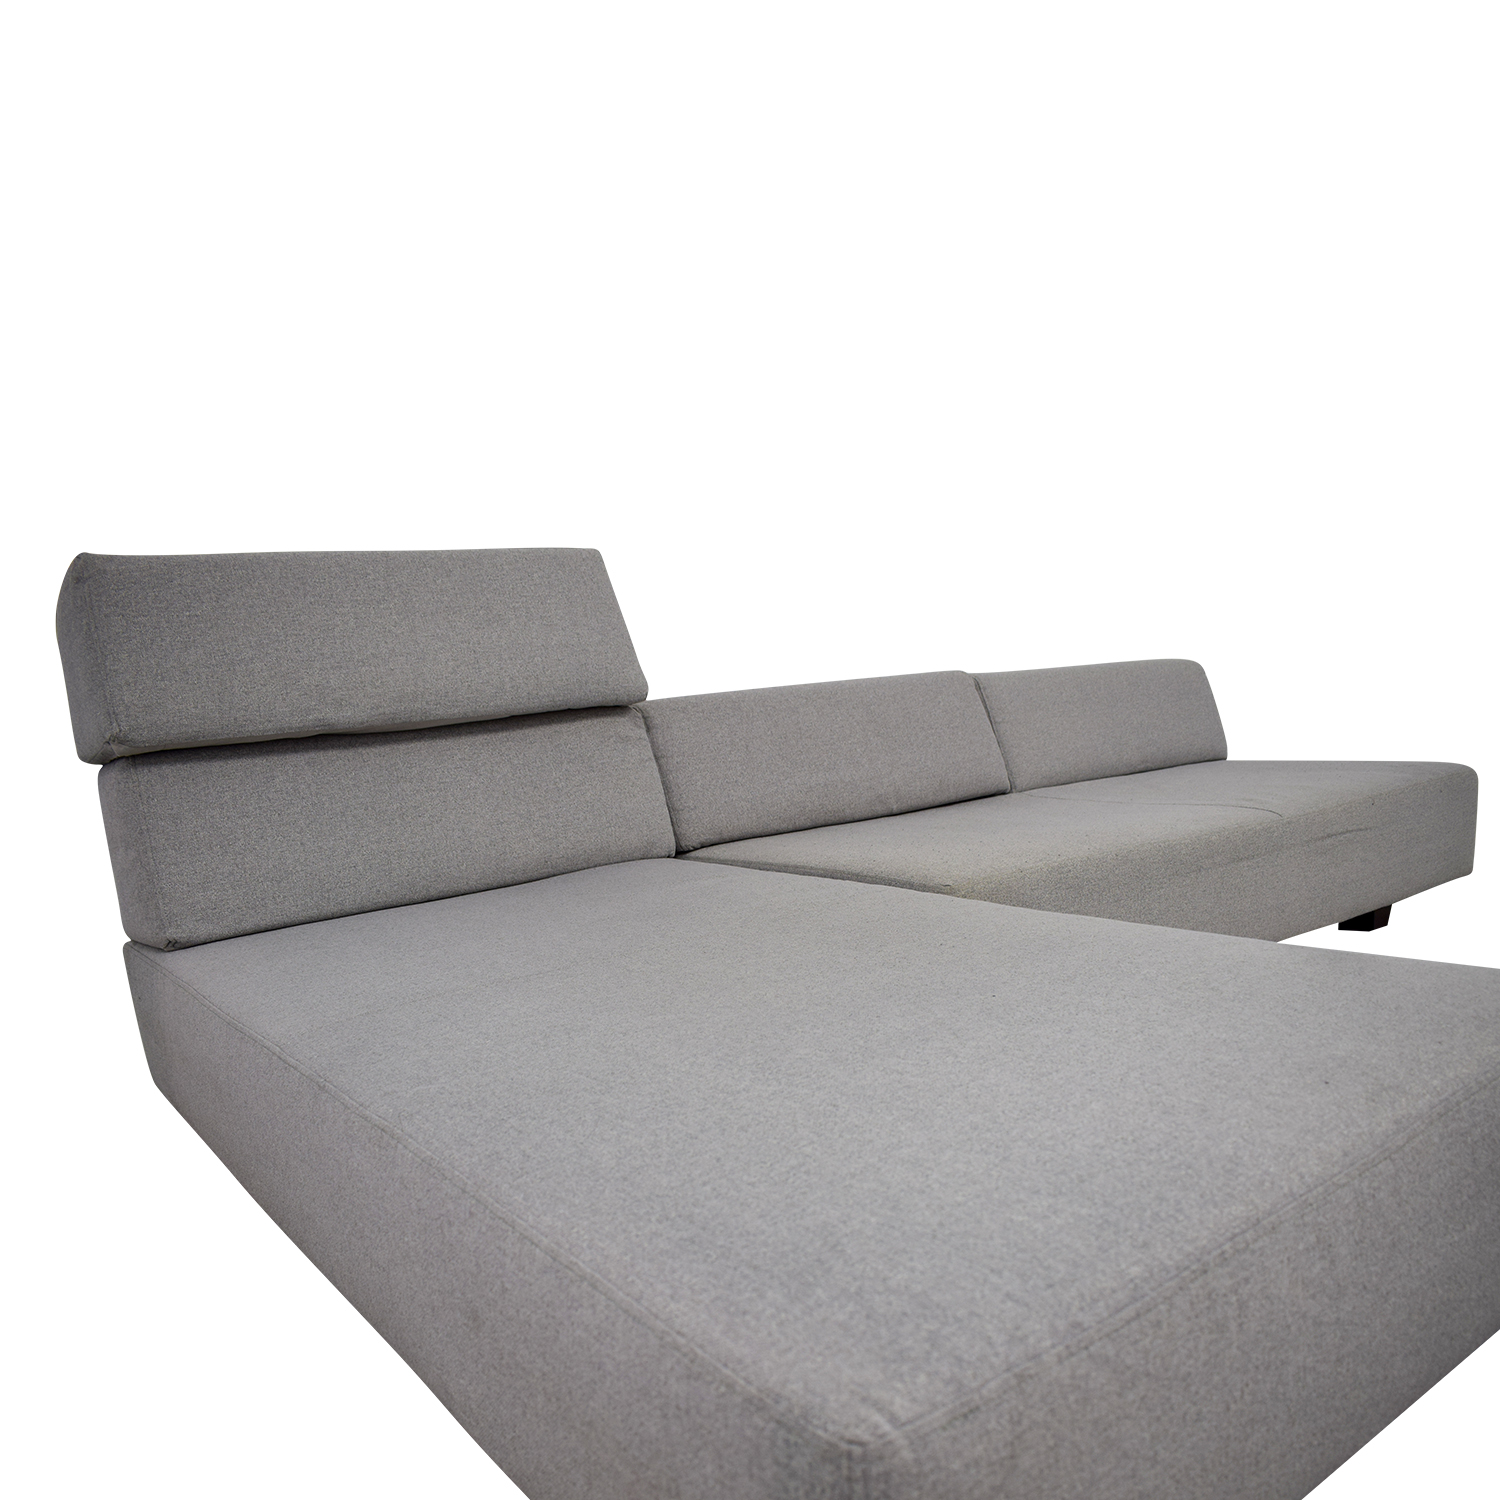 ... West Elm West Elm Tillary Chenille Tweed Feather Gray Modular Seating  Sofa Coupon ...